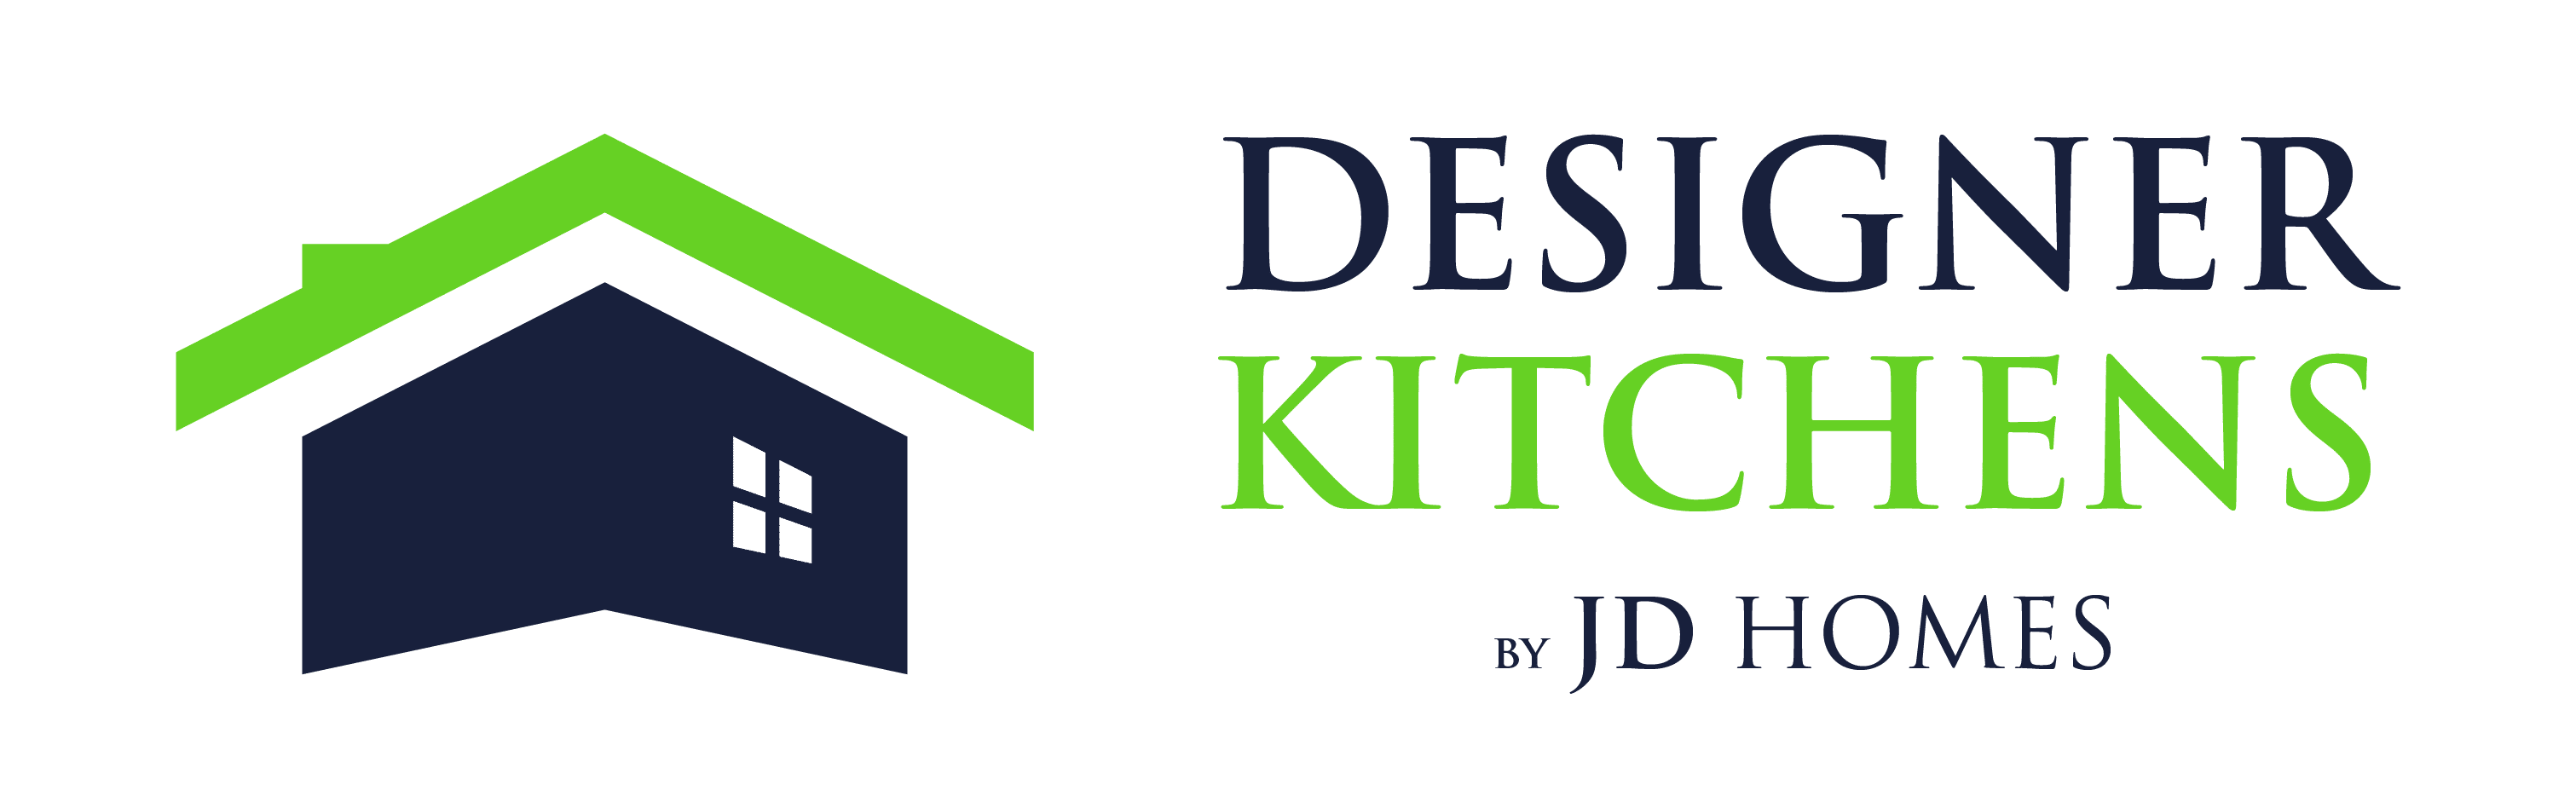 Buy Designer Kitchens